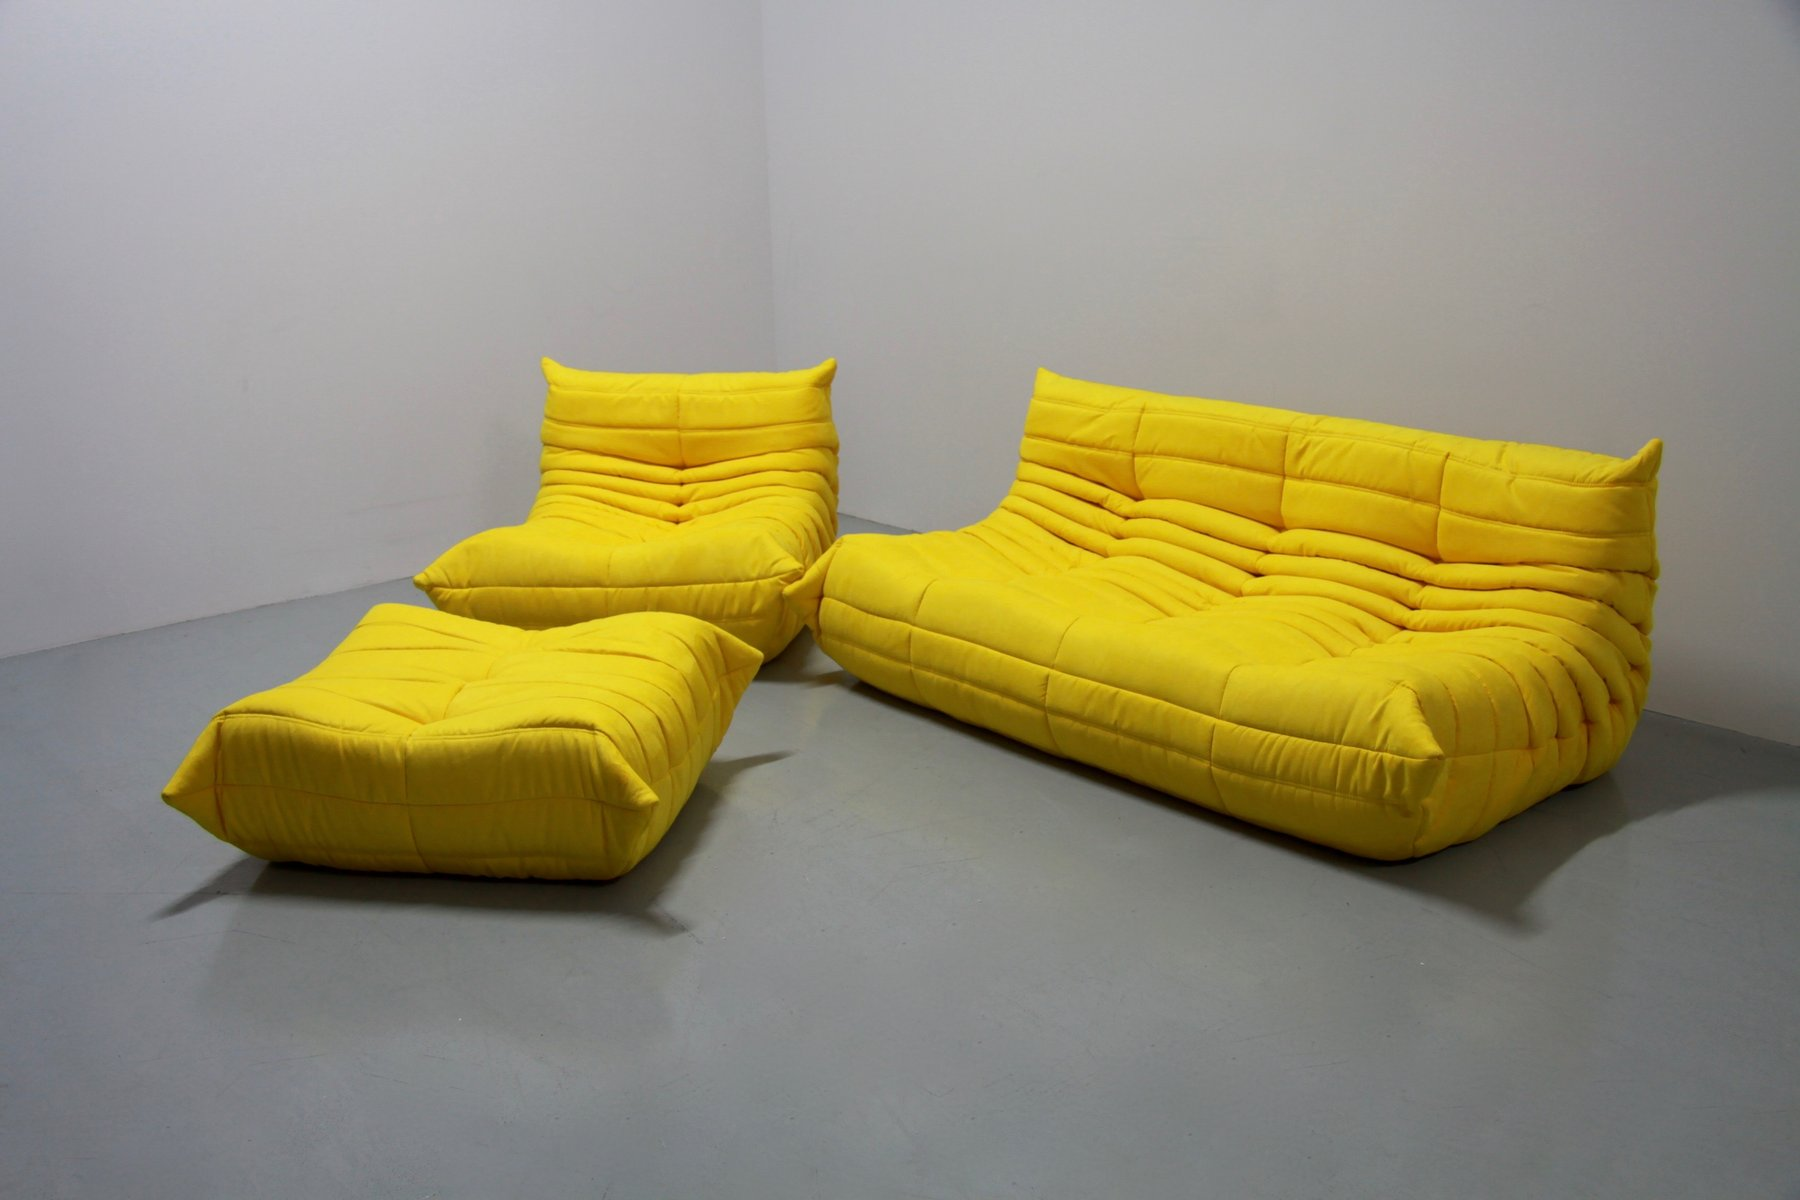 vintage yellow microfibre togo sofa set by michel ducaroy for ligne roset 1970s for sale at pamono. Black Bedroom Furniture Sets. Home Design Ideas